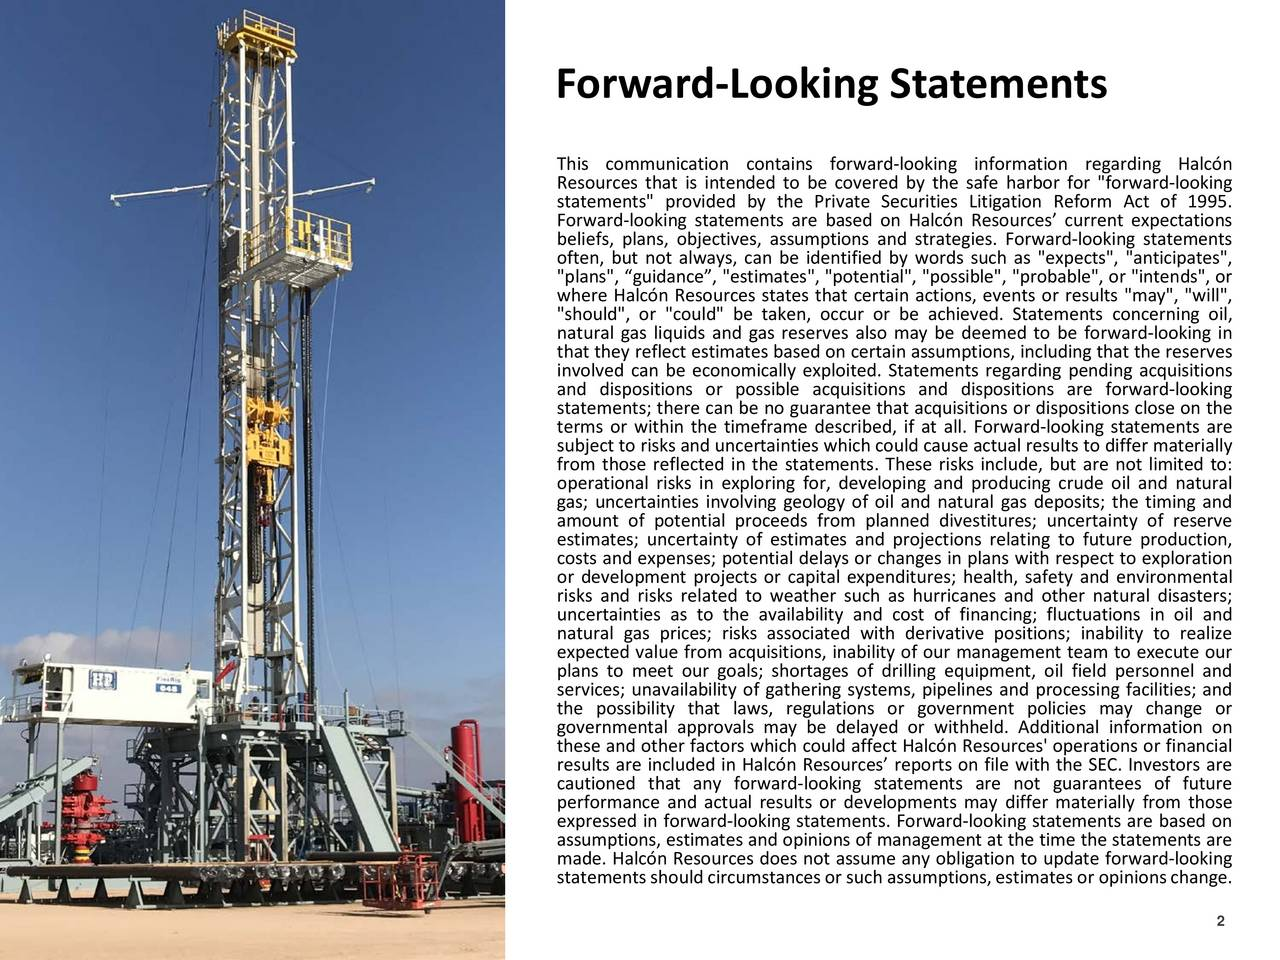 """This communication contains forward-looking information regarding Halcn Resources that is intended to be covered by the safe harbor for """"forward-looking statements"""" provided by the Private Securities Litigation Reform Act of 1995. Forward-looking statements are based on Halcn Resources current expectations beliefs, plans, objectives, assumptions and strategies. Forward-looking statements often, but not always, can be identified by words such as """"expects"""", """"anticipates"""", """"plans"""", guidance, """"estimates"""", """"potential"""", """"possible"""",""""probable"""", or """"intends"""",or where Halcn Resources states that certain actions, events or results """"may"""", """"will"""", """"should"""", or """"could"""" be taken, occur or be achieved. Statements concerning oil, natural gas liquids and gas reserves also may be deemed to be forward-looking in involved can be economically exploited. Statements regarding pending acquisitionsves and dispositions or possible acquisitions and dispositions are forward-looking statements; there can be no guarantee that acquisitionsor dispositionsclose on the terms or within the timeframe described, if at all. Forward-looking statements are subject to risks and uncertainties whichcould causeactualresultsto differ materially from those reflected in the statements. These risks include, but are not limitedo: operational risks in exploring for, developing and producing crude oil and natural gas; uncertainties involving geology of oil and natural gas deposits; the timing and amount of potential proceeds from planned divestitures; uncertainty of reserve estimates; uncertainty of estimates and projections relating to future production, costs and expenses; potentialdelays or changes in plans with respect to exploration risks and risks related to weather such as hurricanes and other natural disasters; uncertainties as to the availability and cost of financing; fluctuations in oil and natural gas prices; risks associated with derivative positions; inability to realize expected value from acquisitions"""